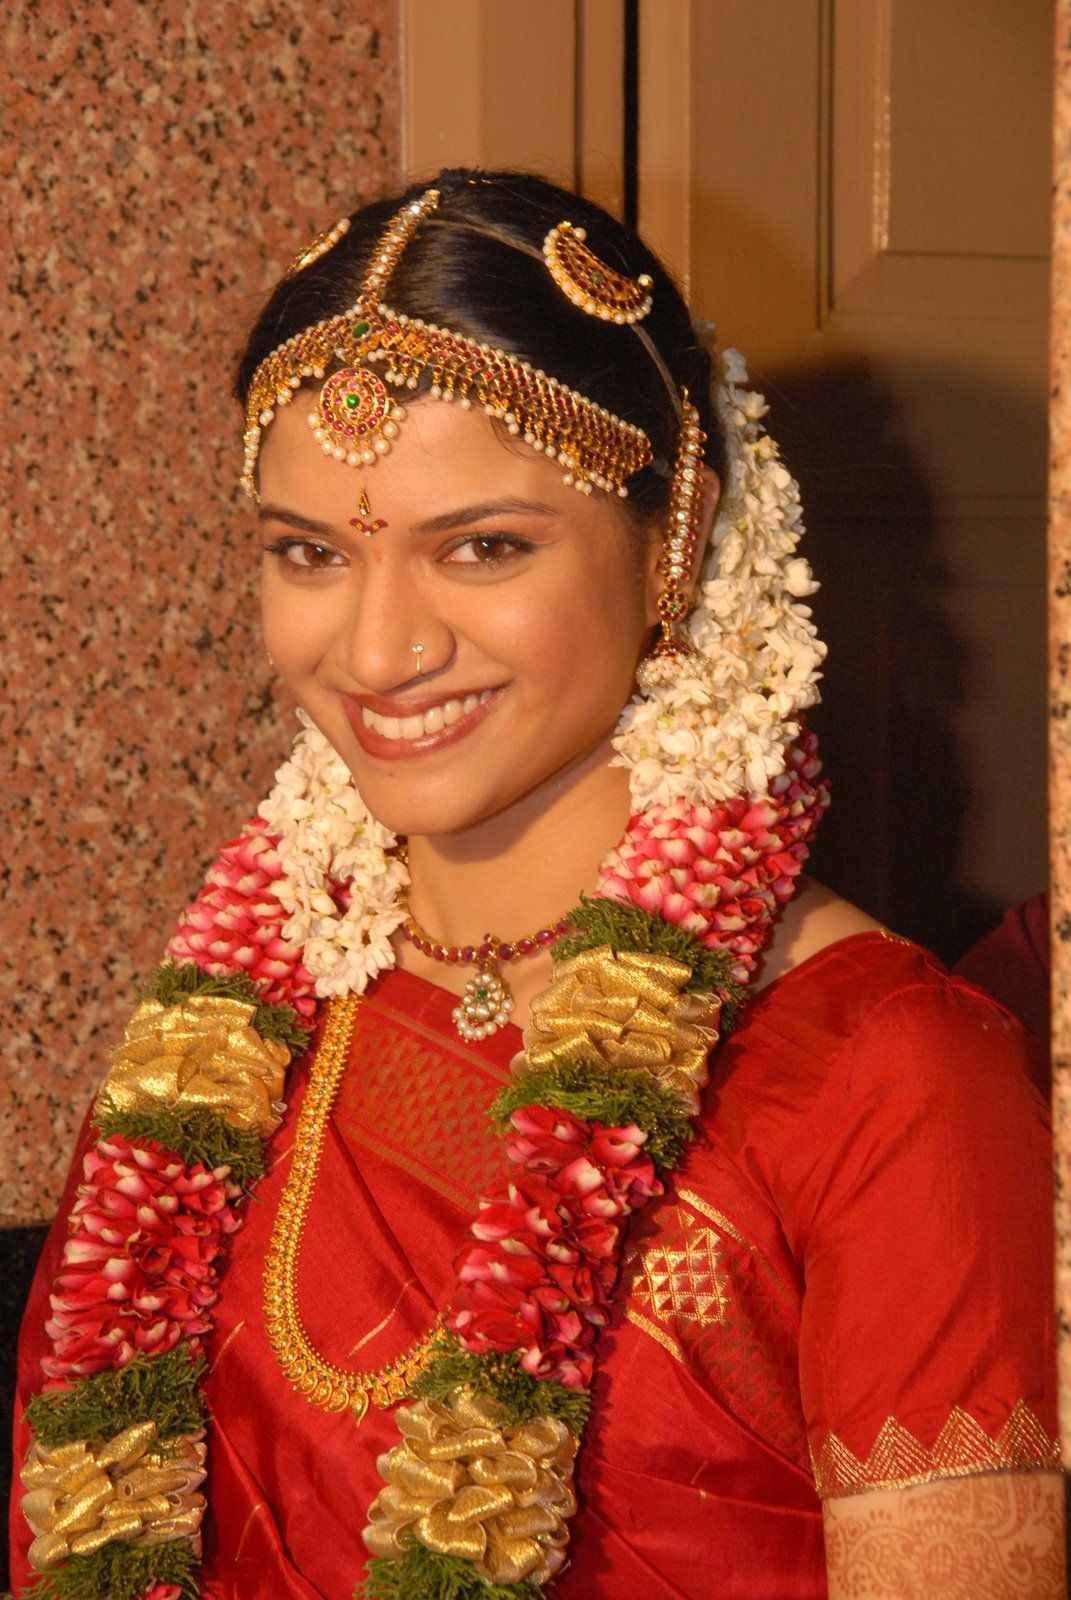 south indian wedding jewelry #indianwedding, #southasianwedding